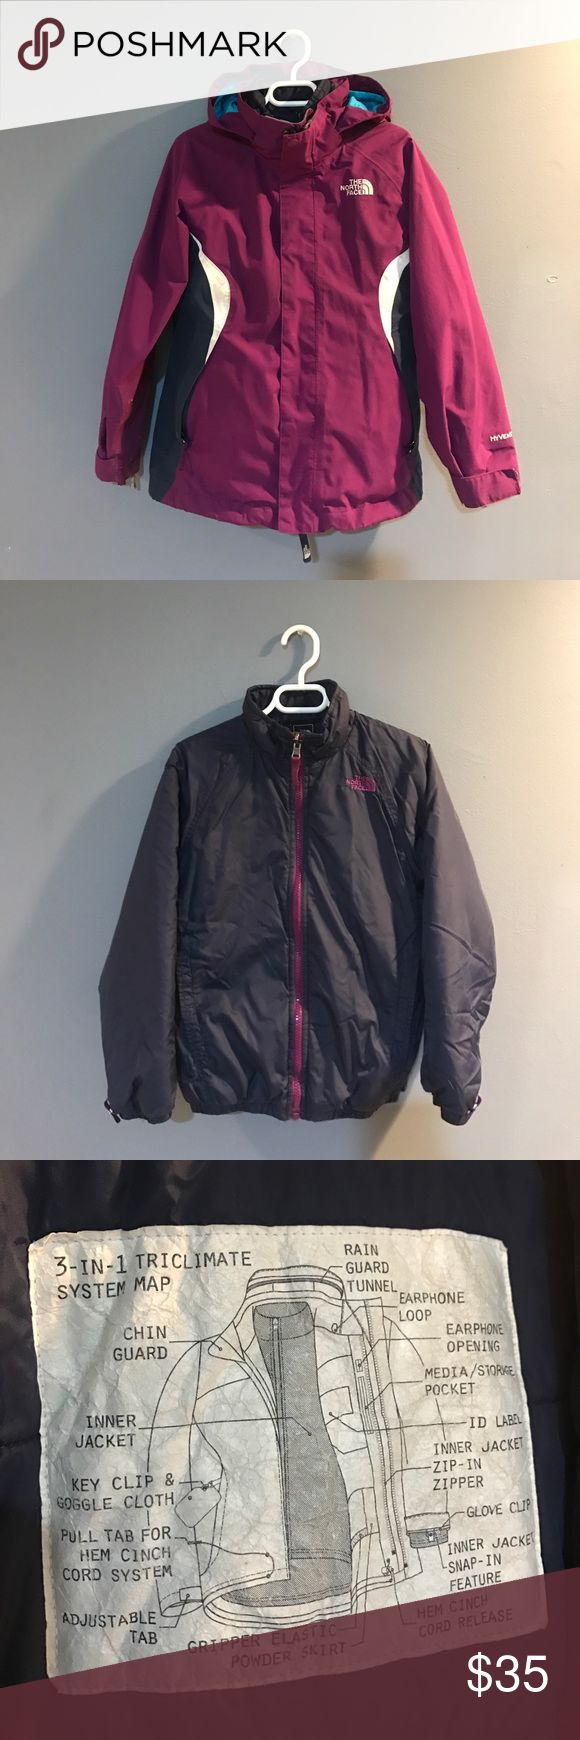 Kids THE NORTH FACE 💟 Little Girls North Face, kept in pretty good condition, very small little tears in right sleeve, inner jacket, inner jacket snap in feature, storage pockets, glove clips, detachable hood, rain guard on hood, kept my daughter very warm during those winter days ❄️🌬 The North Face Jackets & Coats